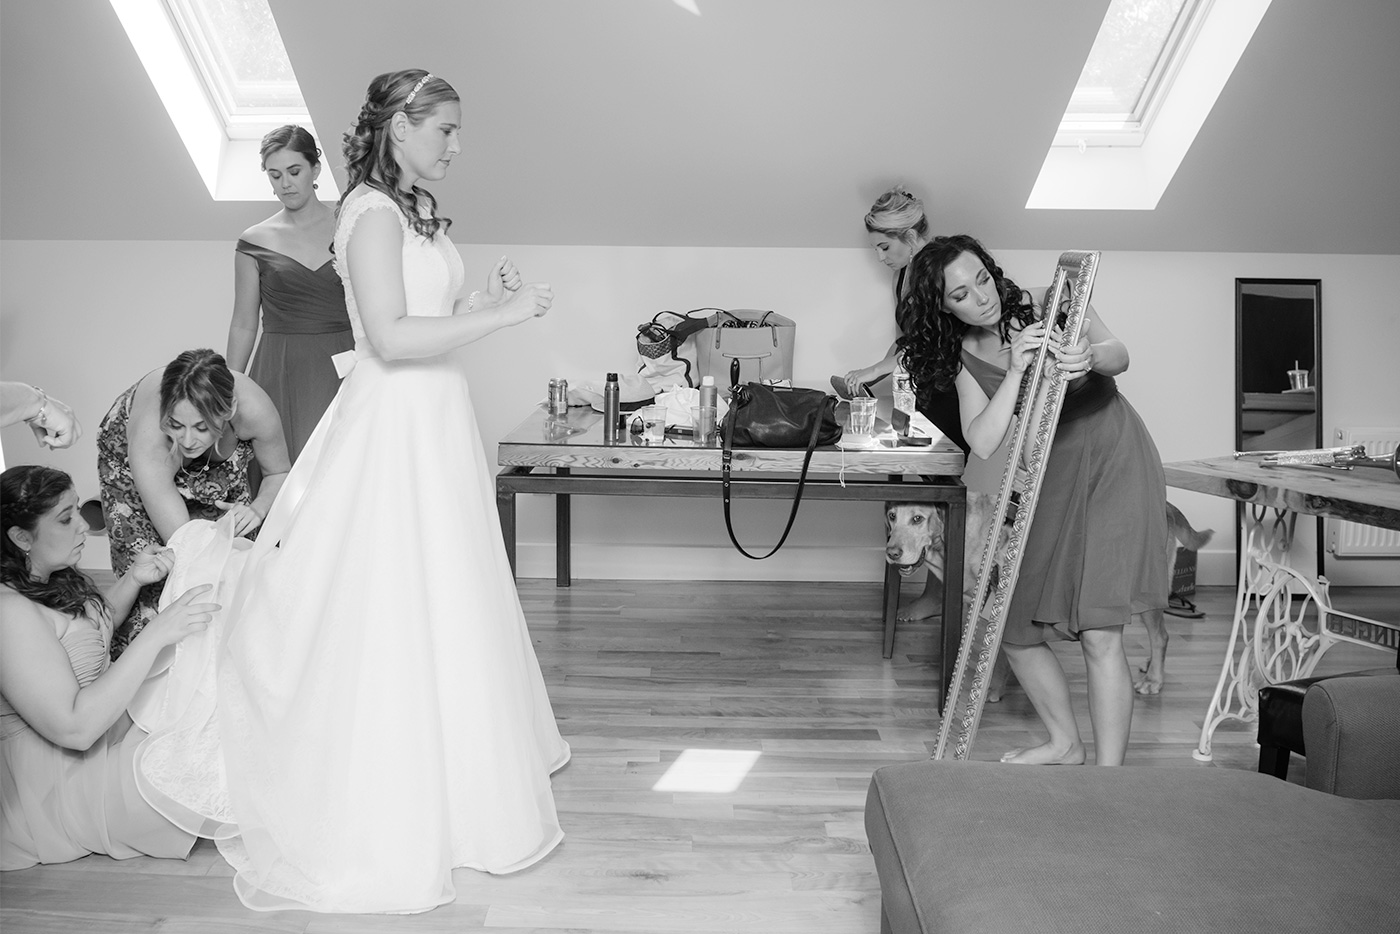 details of getting ready on your wedding day